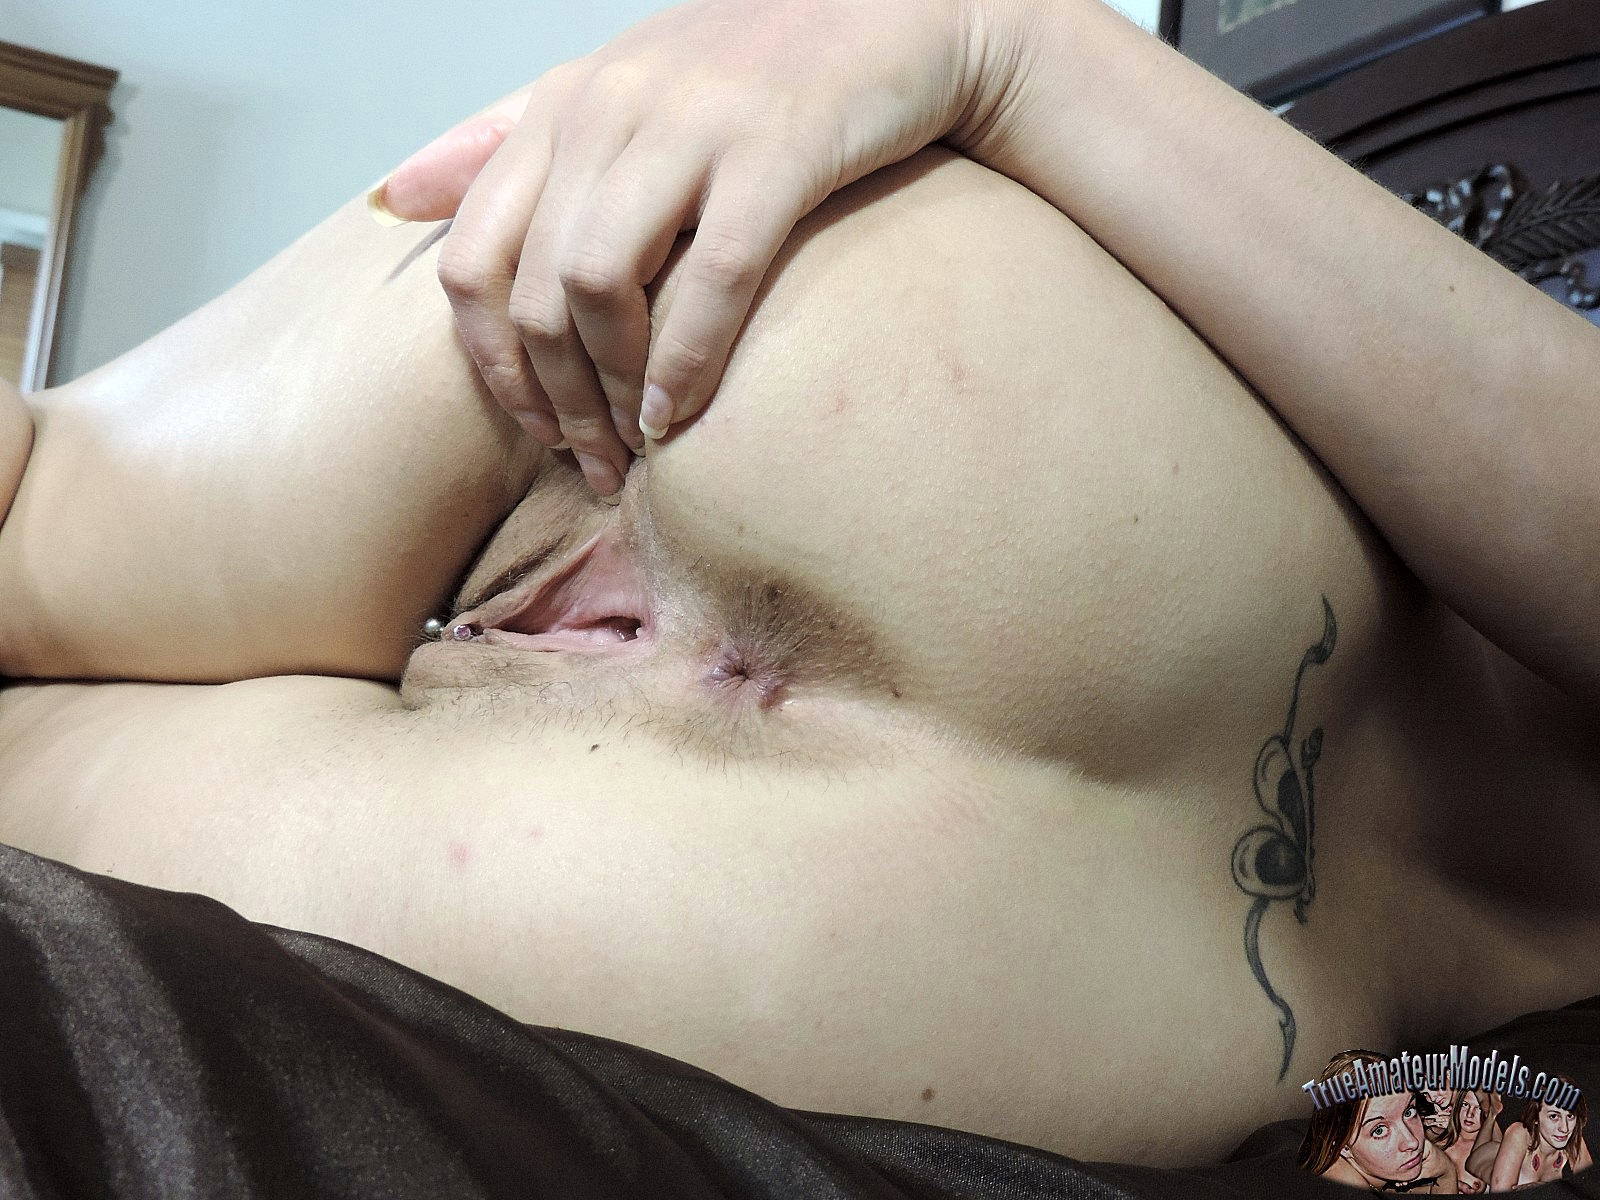 chut mai mera girls with large pertruding clitoris fucking hot!! want give